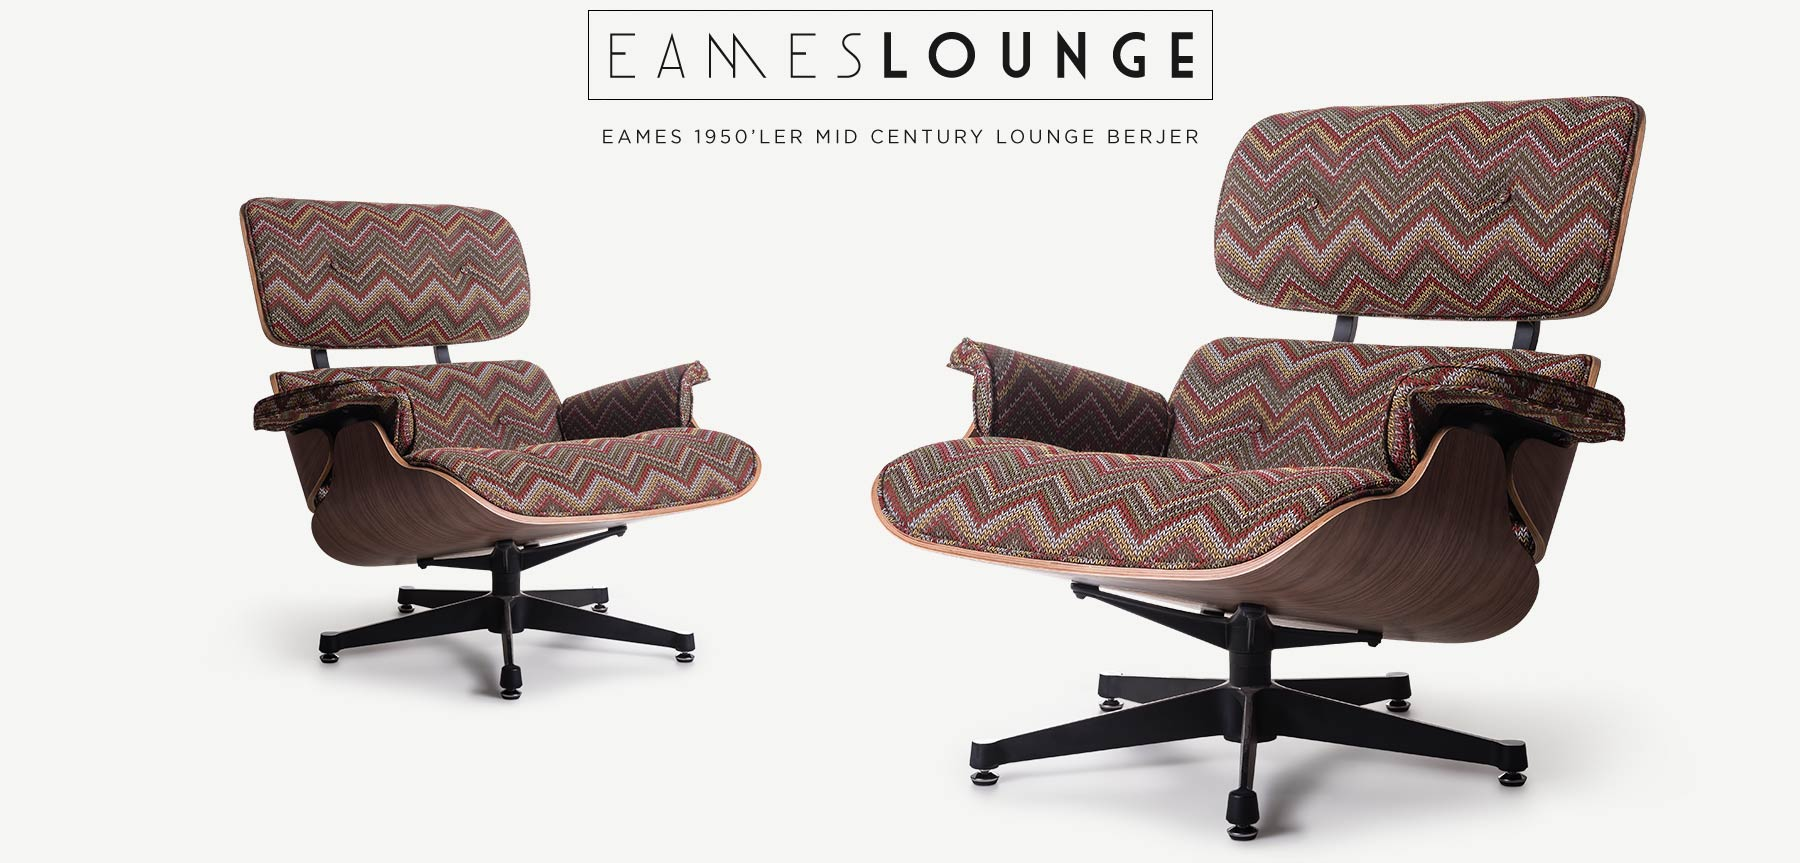 Eames Lounge Chair'in resmi